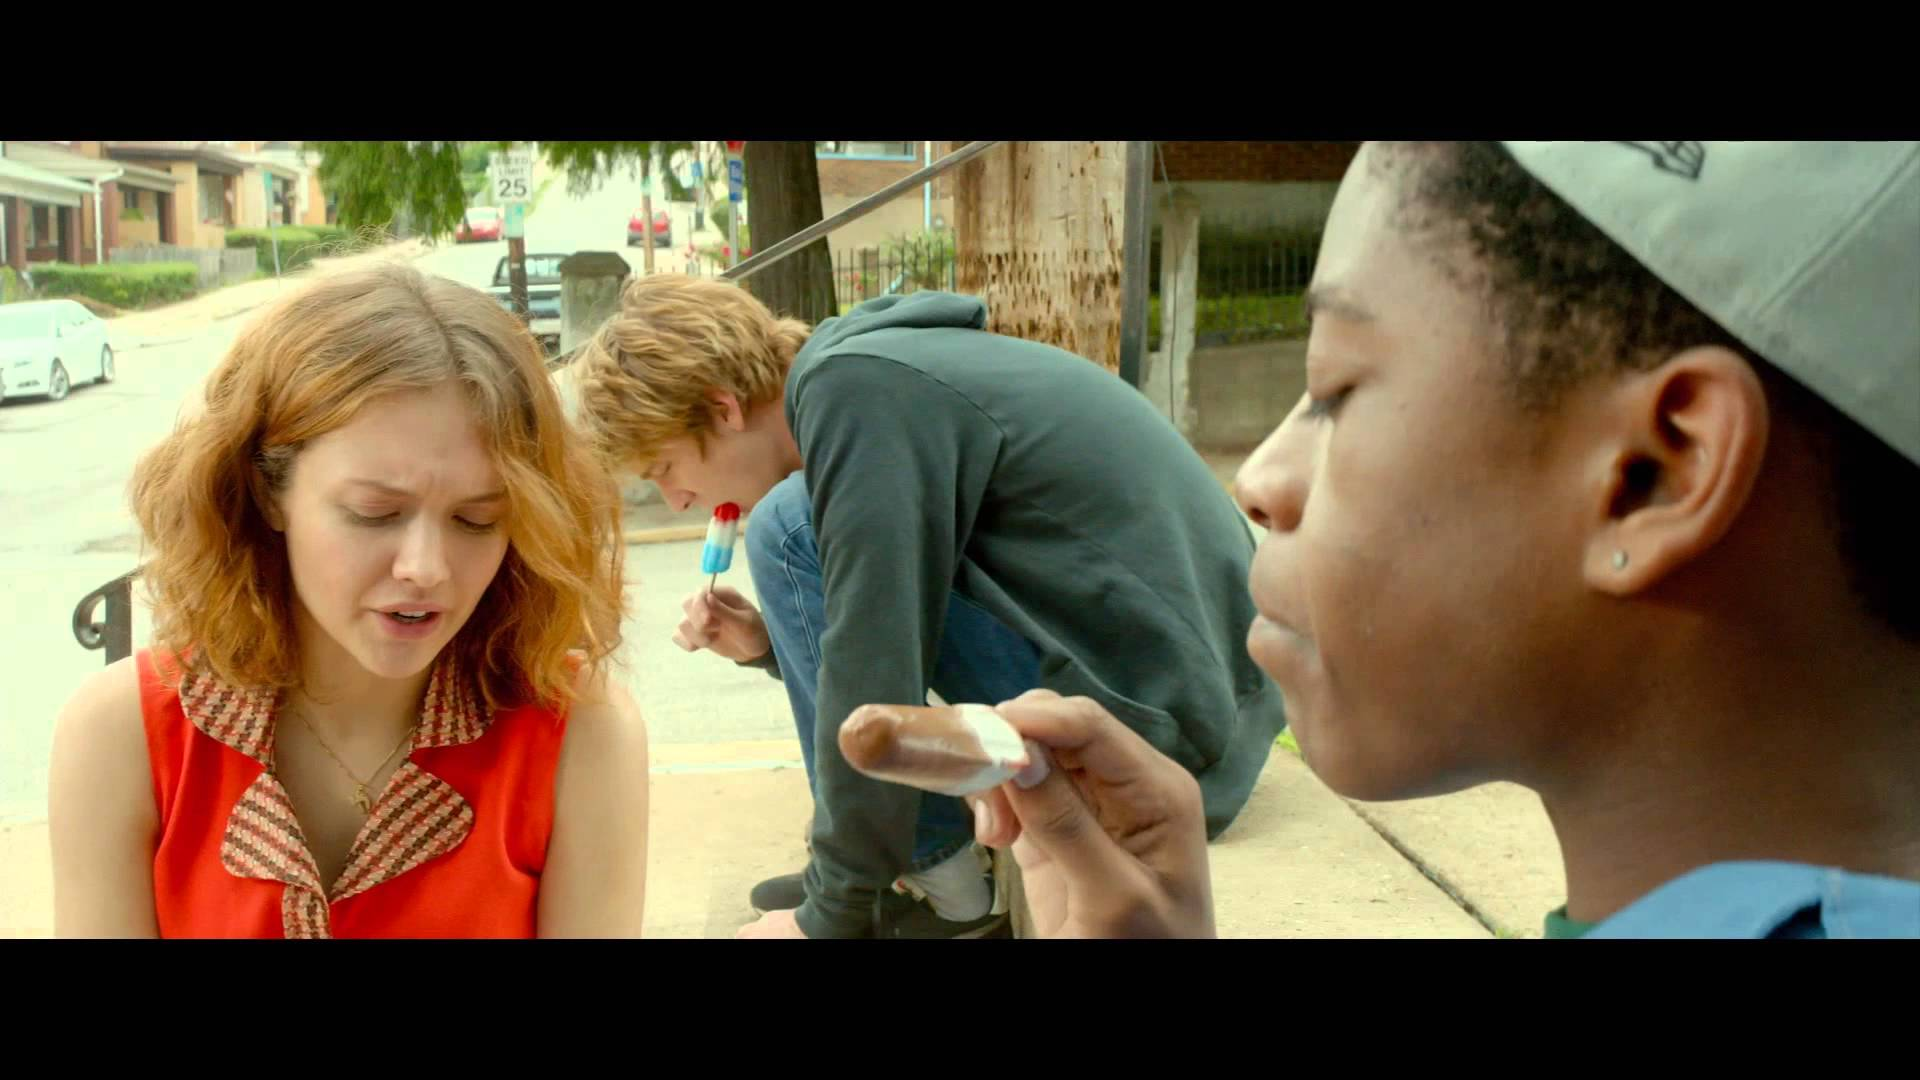 ME AND EARL AND THE DYING GIRL Featurette: This Is The Part About The Director